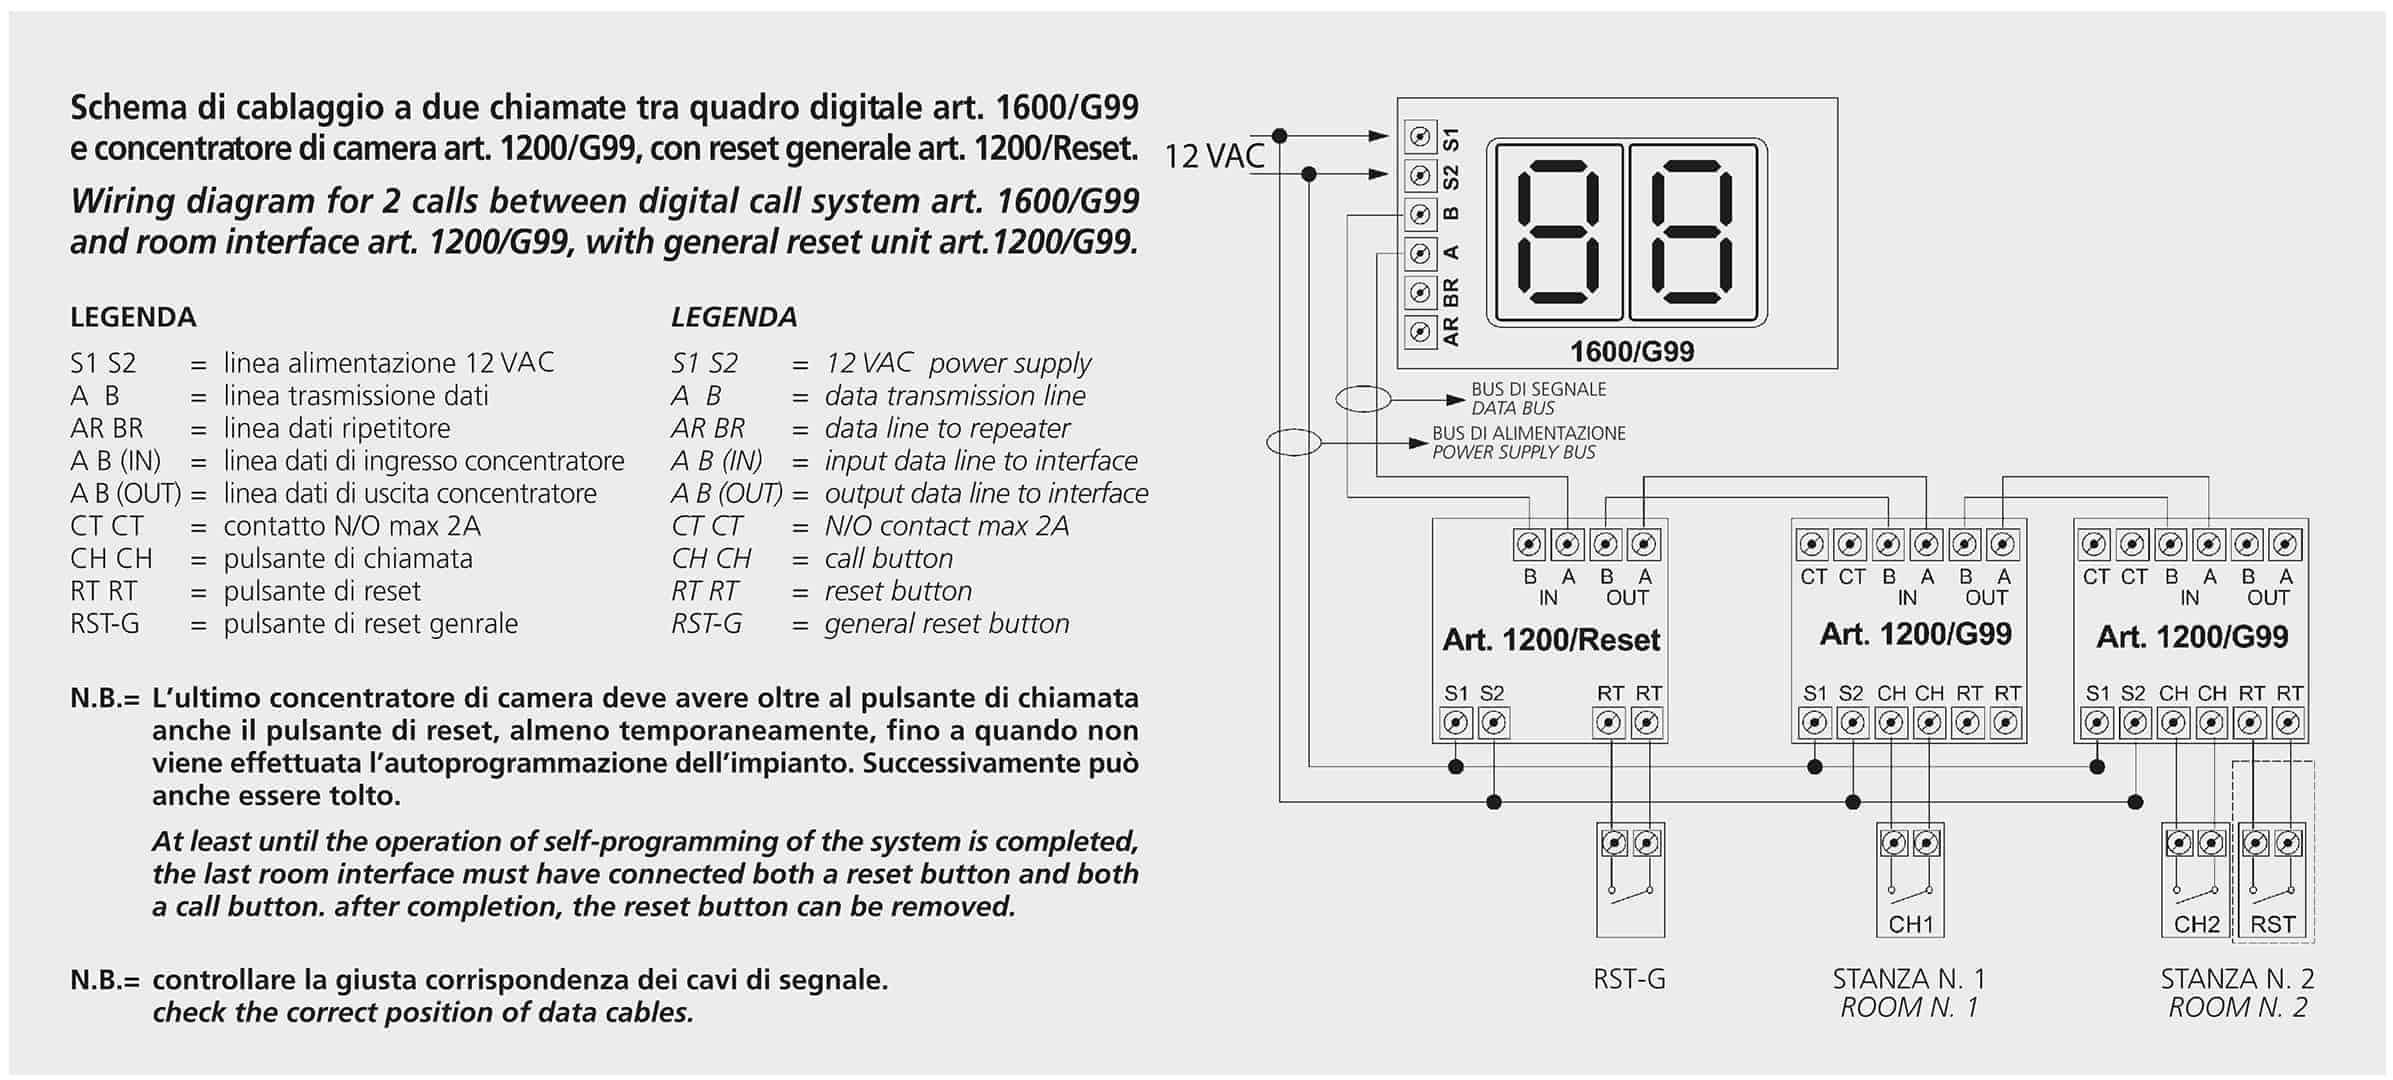 Digital G99 Feb Elettrica Ct Cabinet Wiring Diagram For 2 Calls Between Call System 1600 Or Big And The Room Interface P N 1200 With General Reset Unit